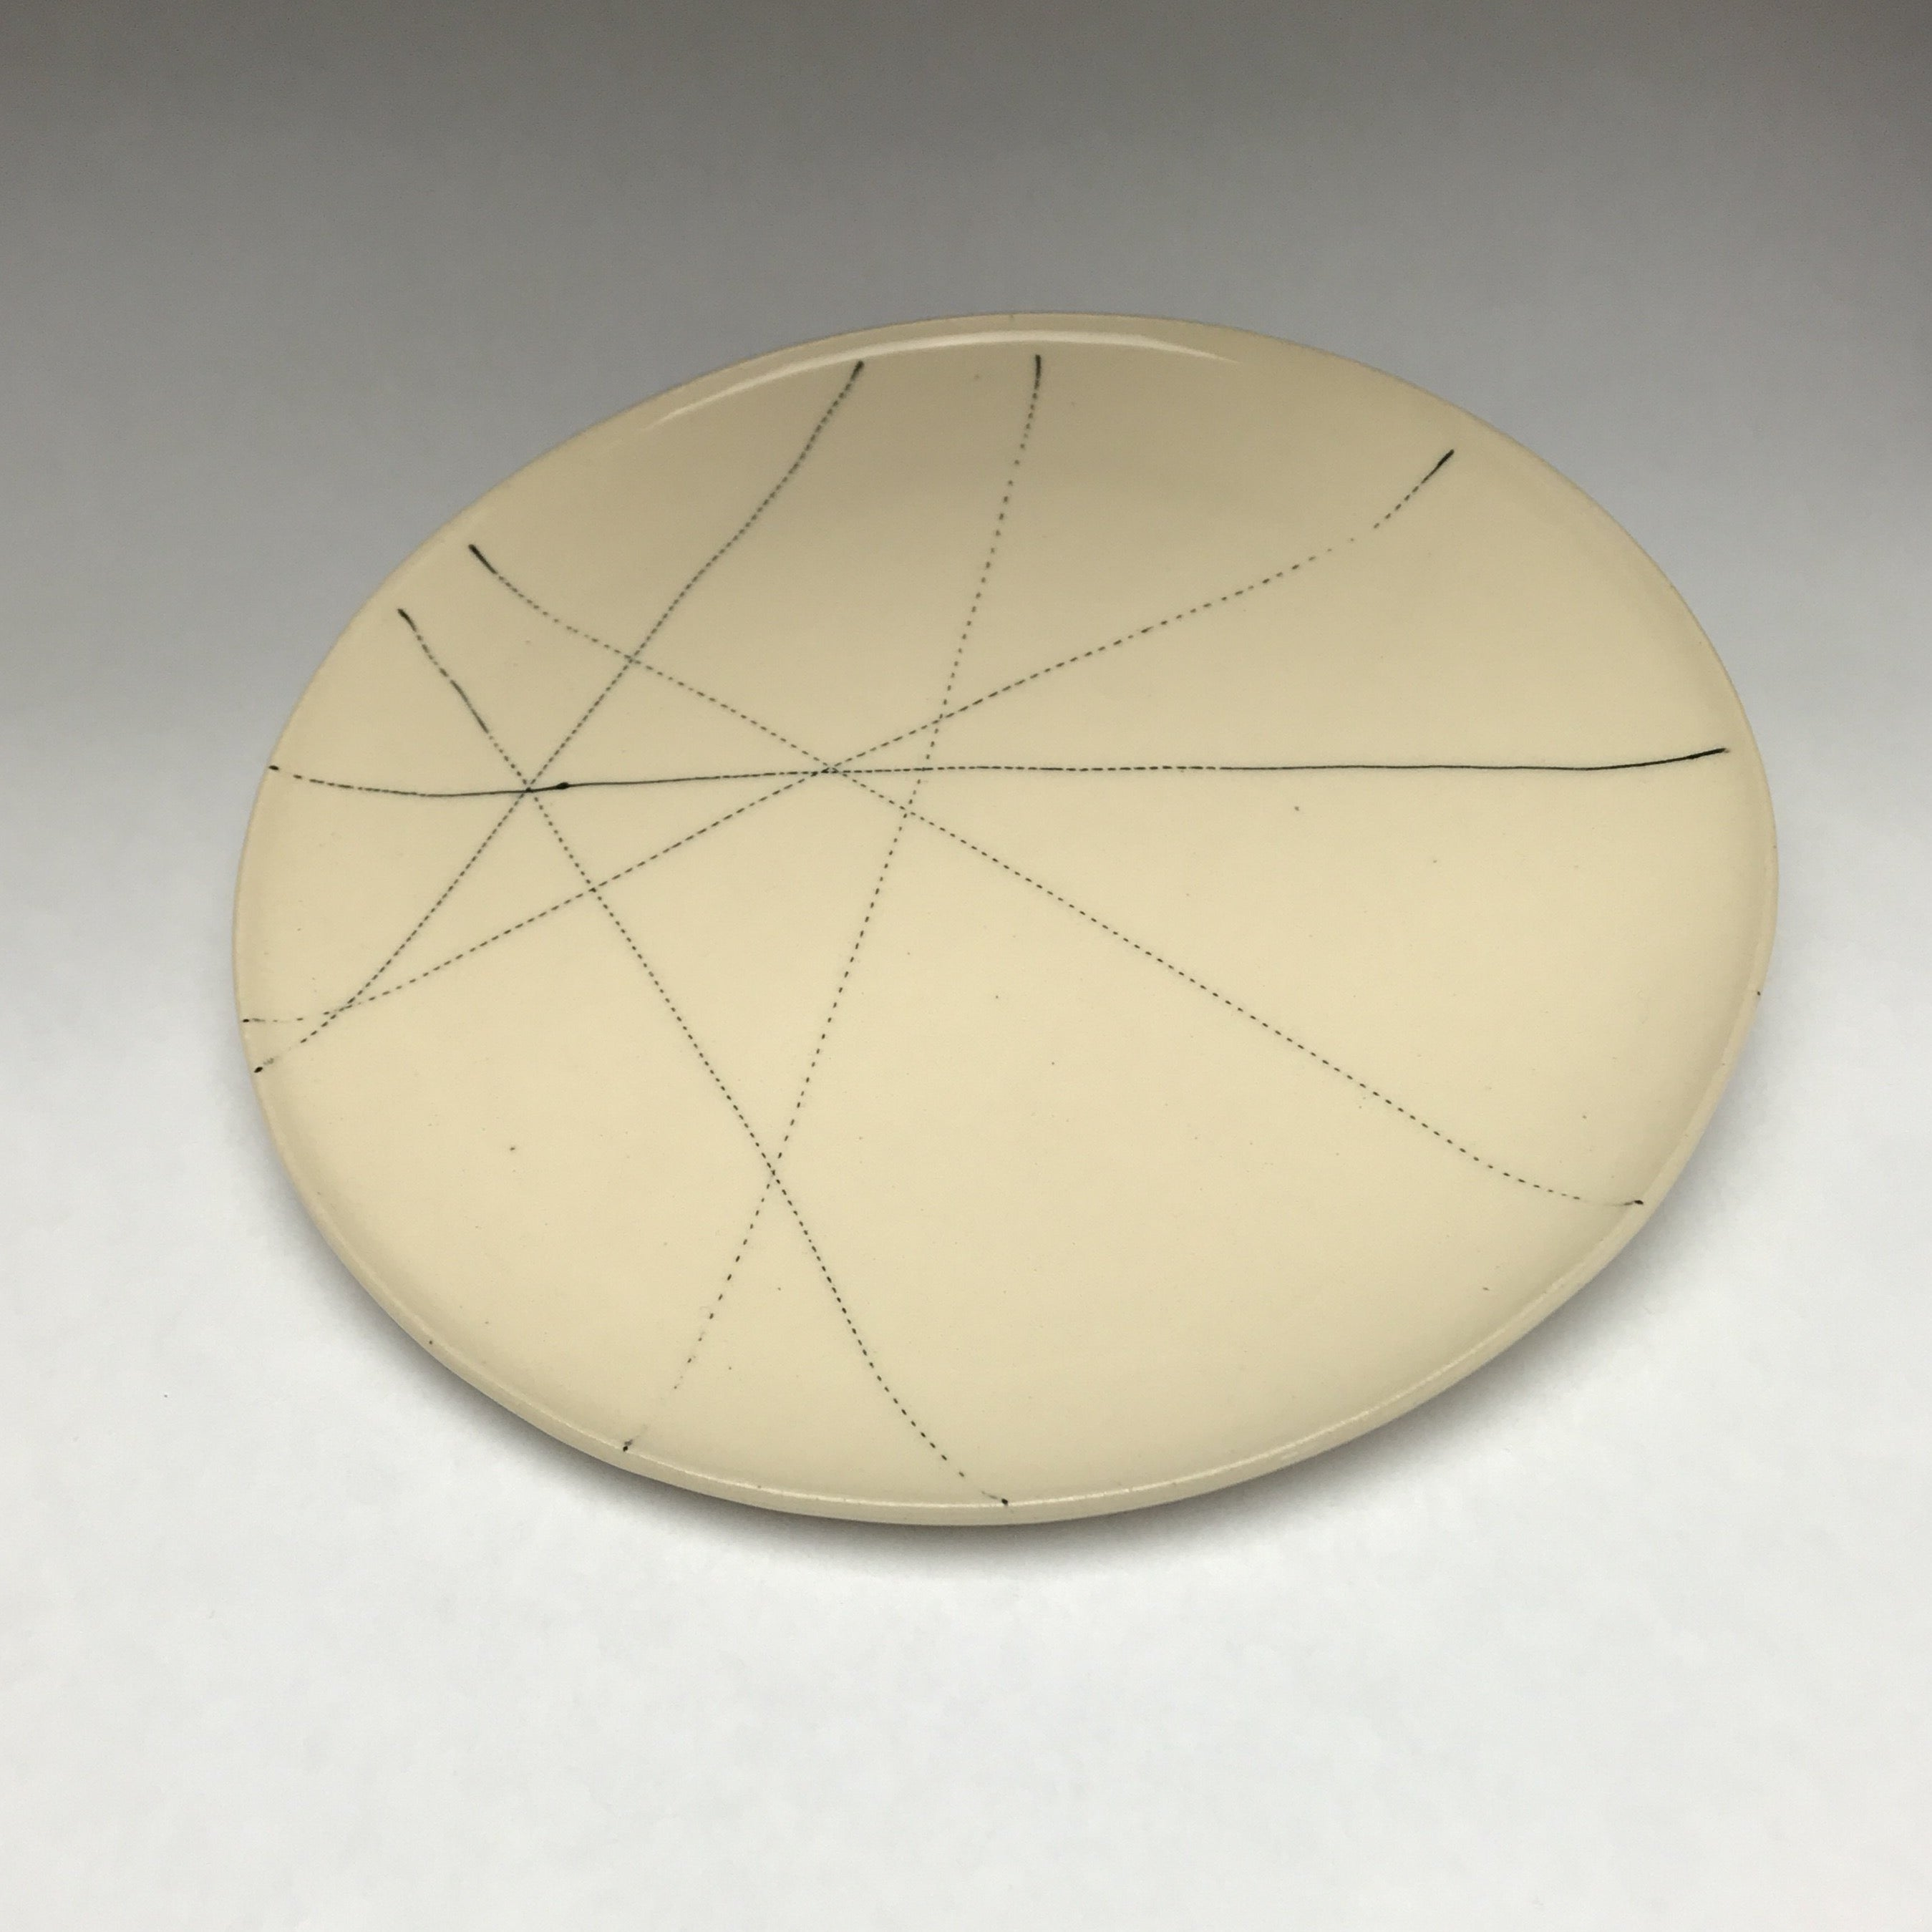 white ceramic plate with black graphic linework reminiscent of graffiti